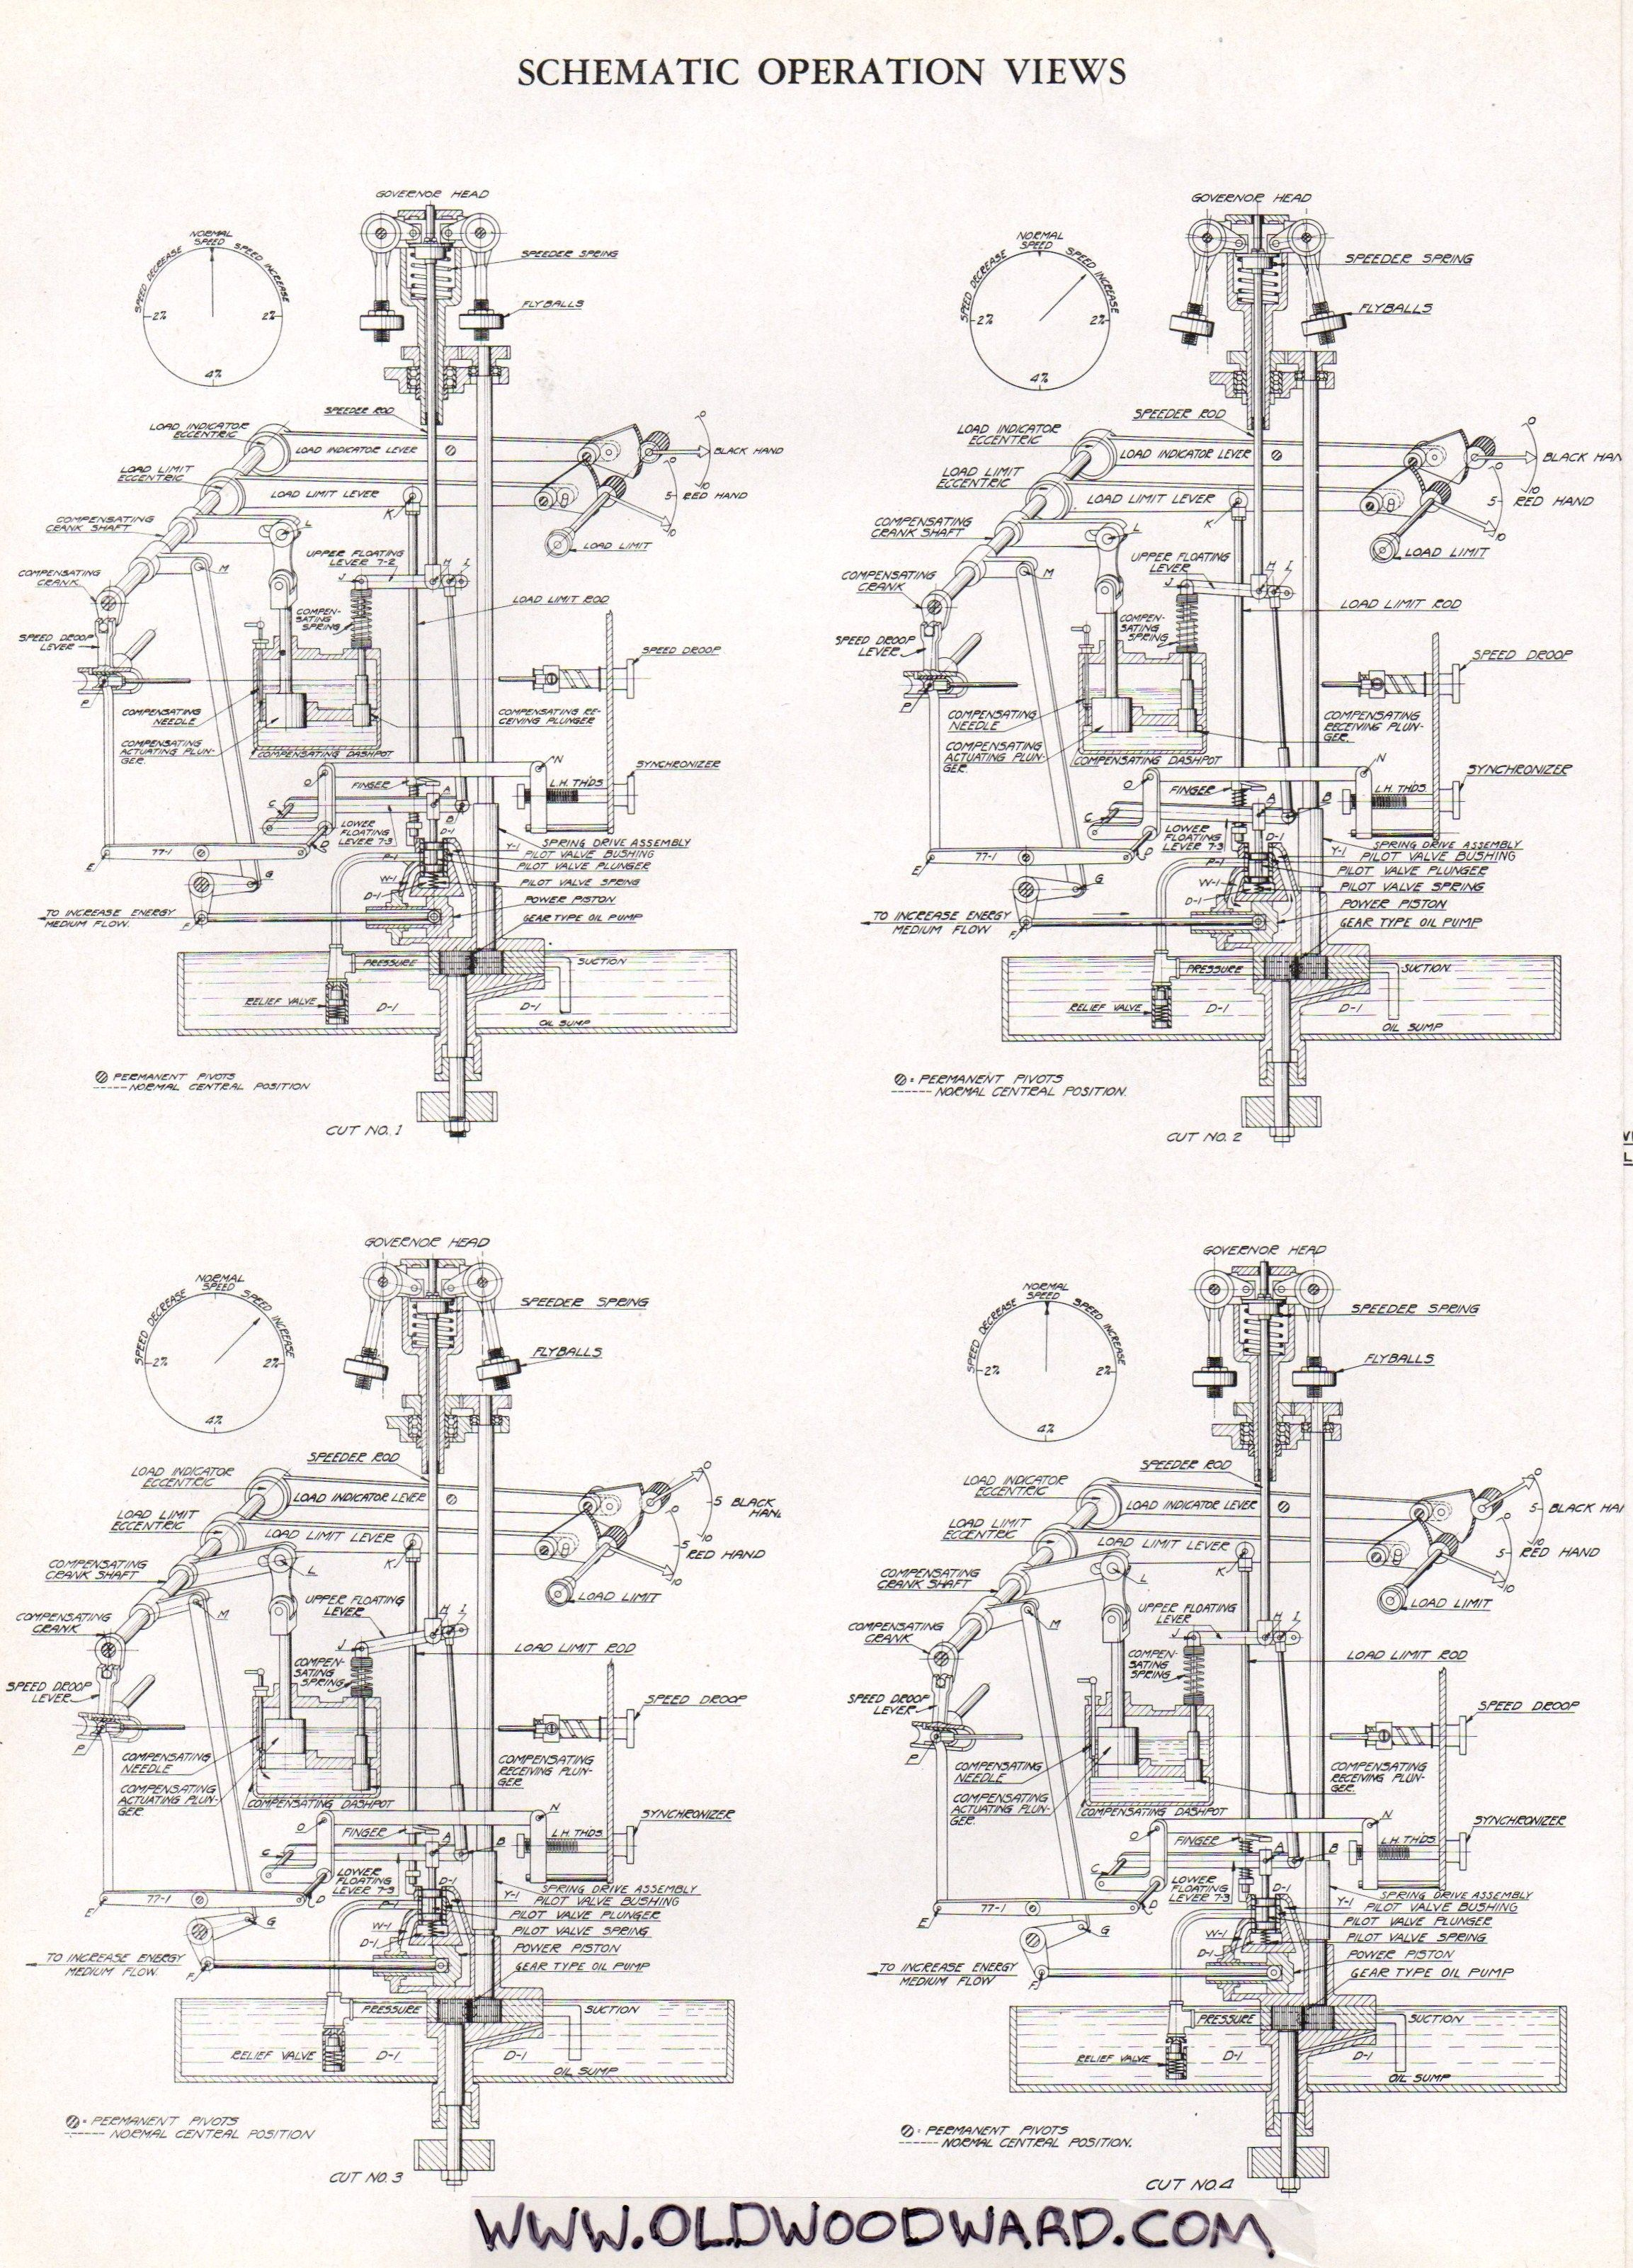 hight resolution of from bulletin w 2 schematic drawing of the woodward governor company s type ic diesel engine governor patent no 2 039 507 the first customer units went to